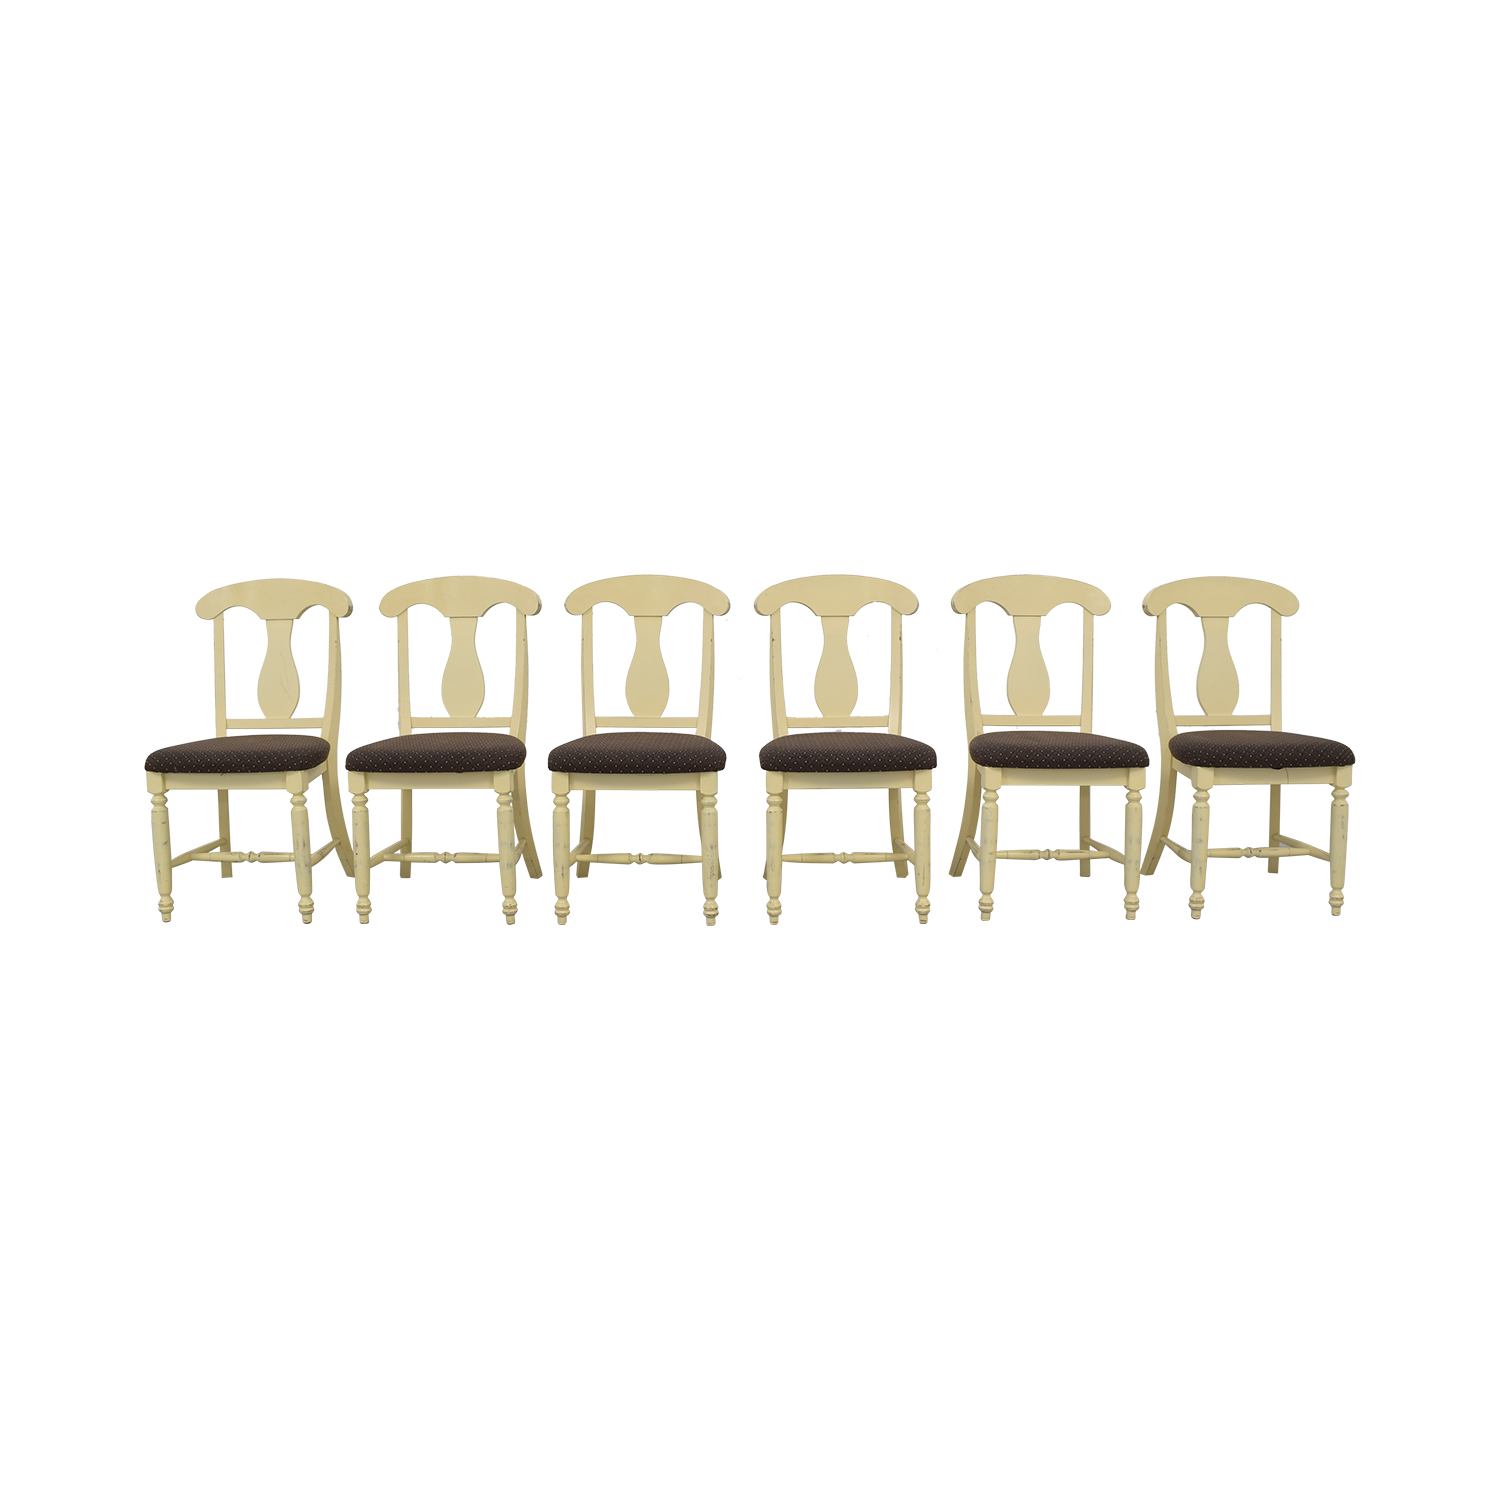 Canadel Furniture Upholstered Dining Chairs